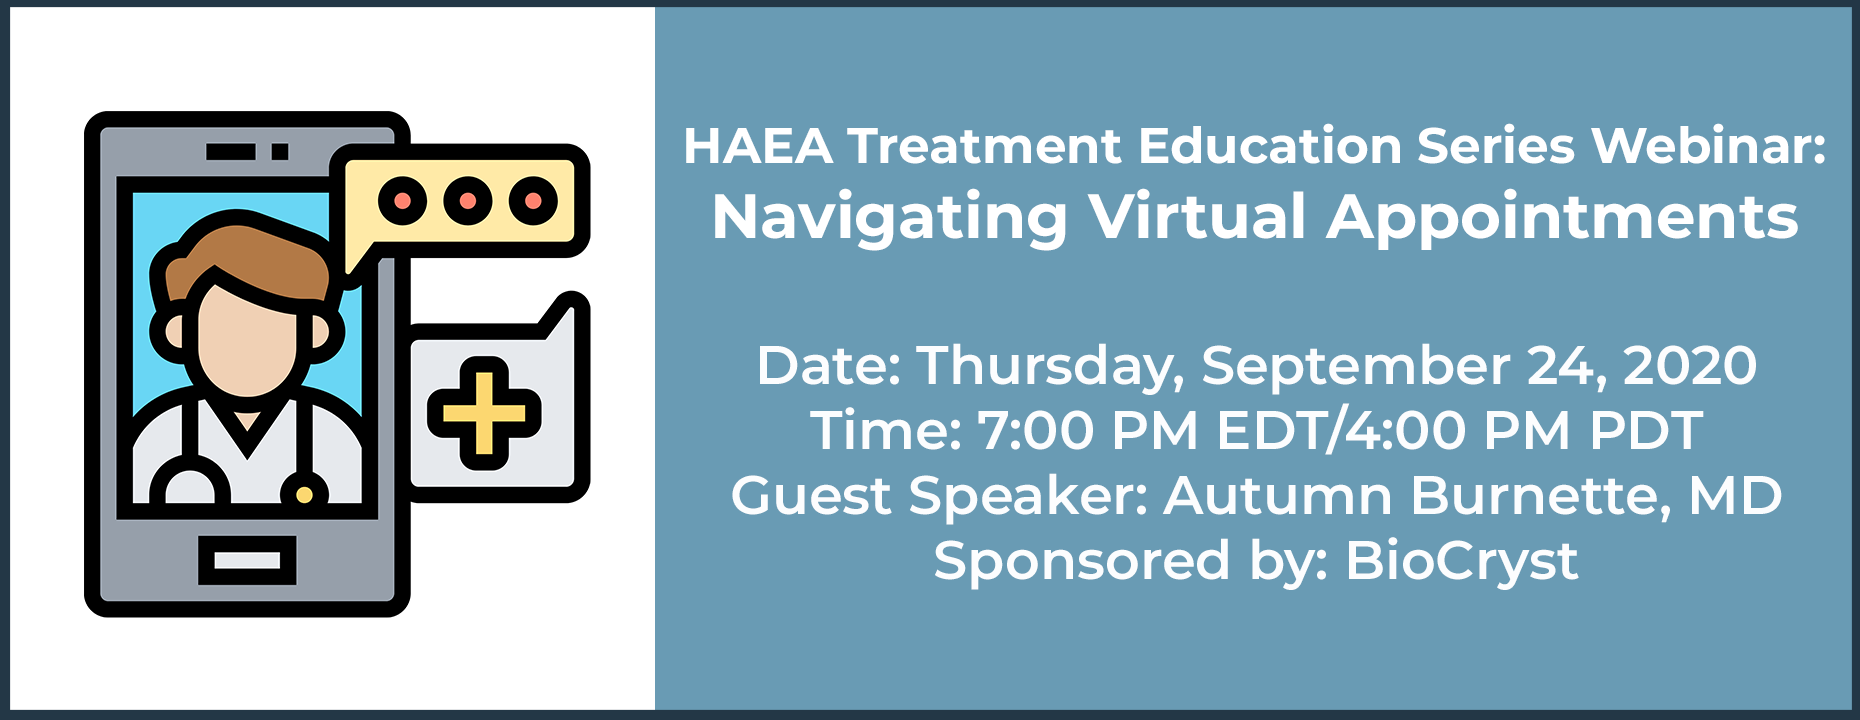 HAEA Treatment Education Series Webinar: Navigating Virtual Appointments